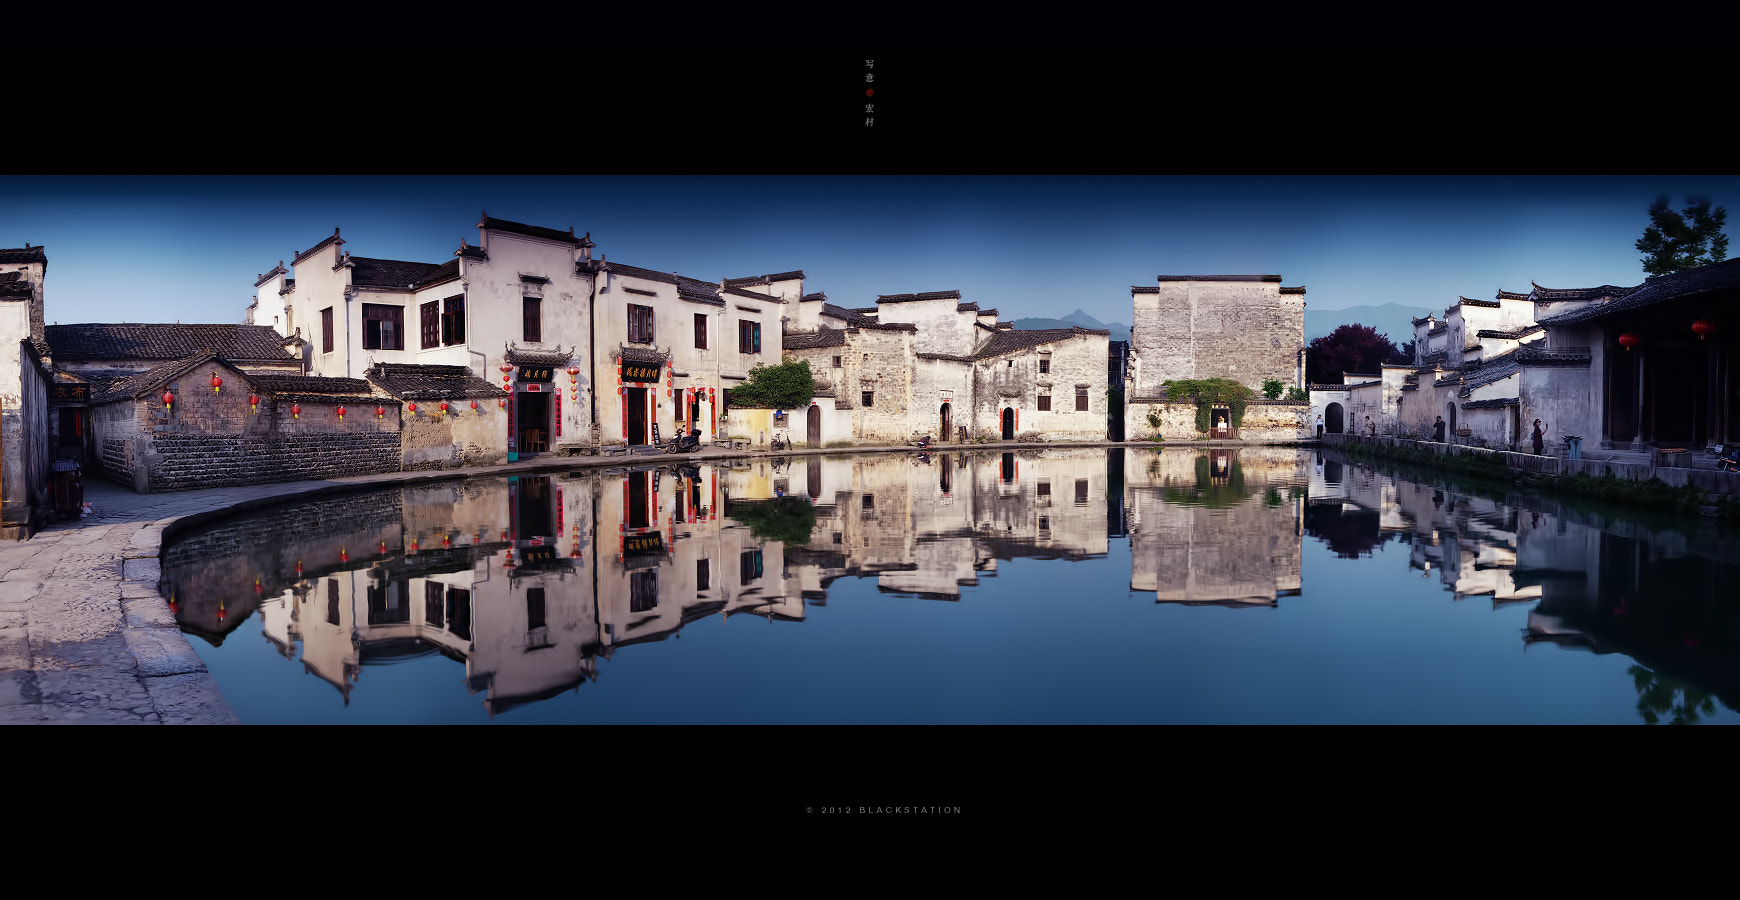 Photograph Ancient Villages by Black Station on 500px